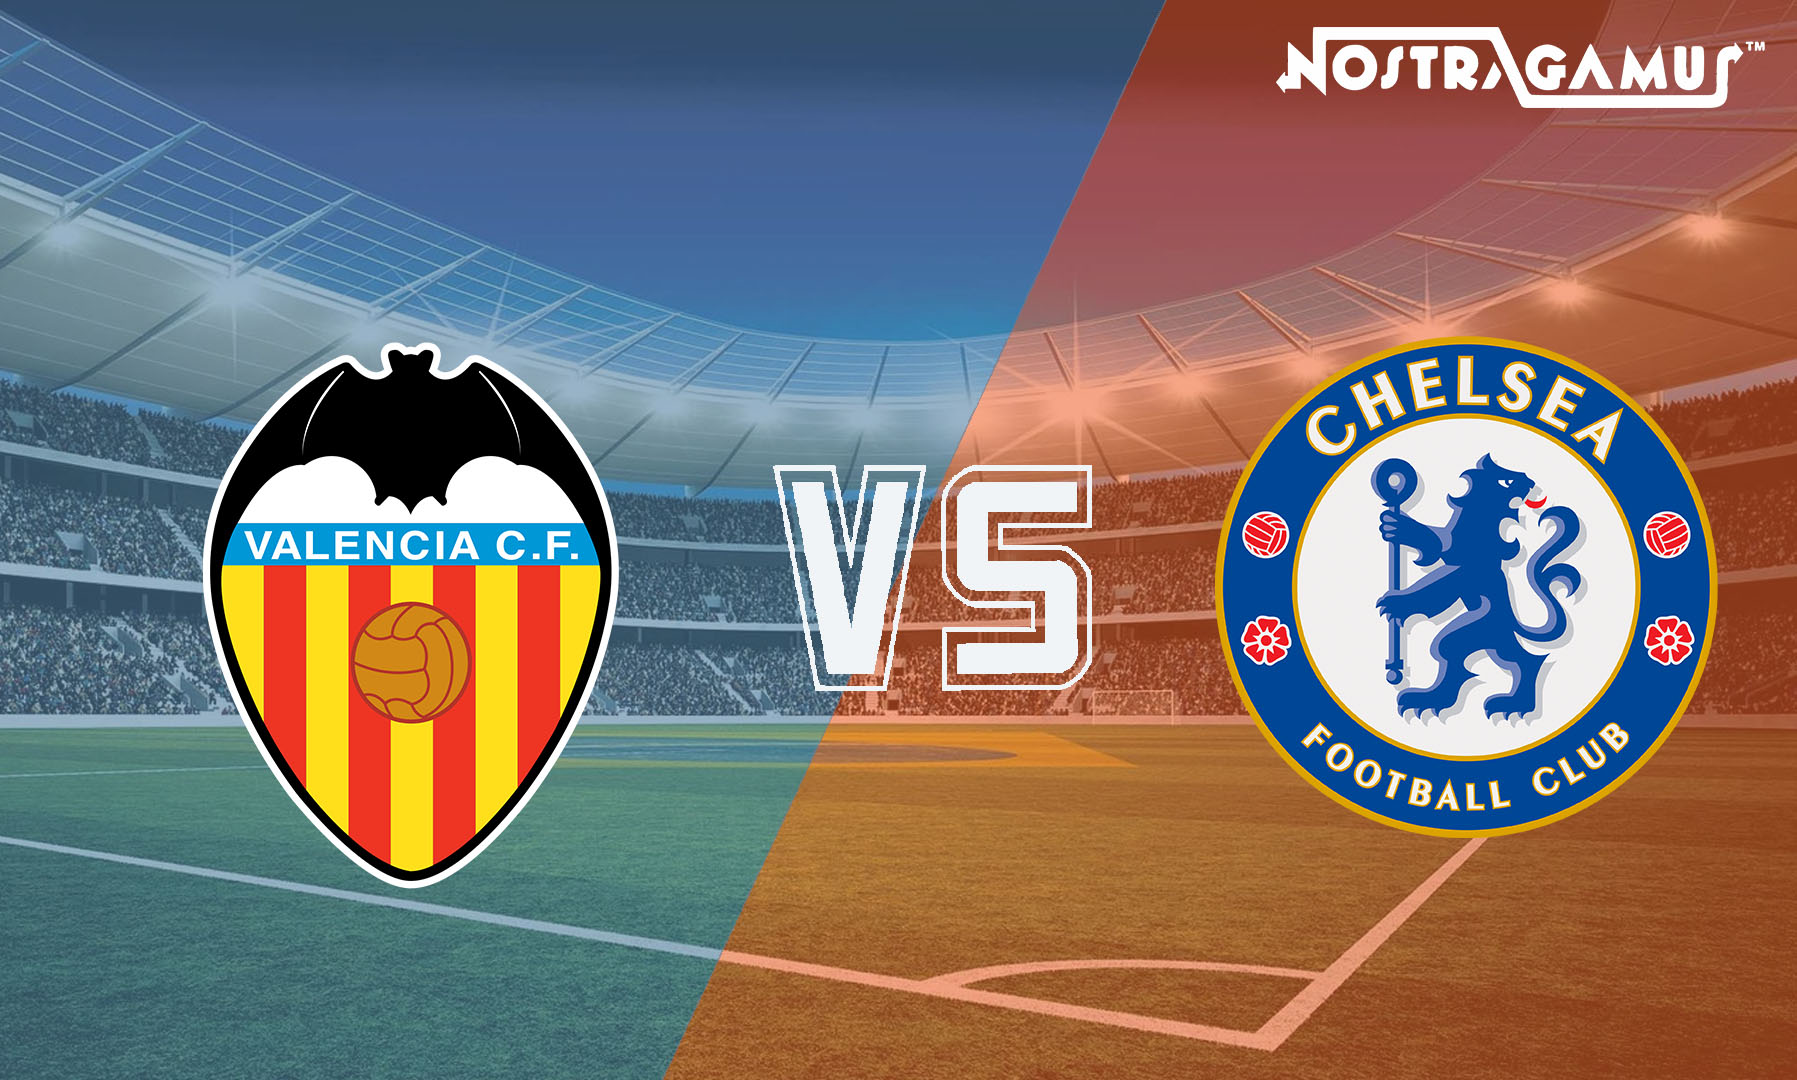 Champions League Match Predictions: Valencia vs Chelsea